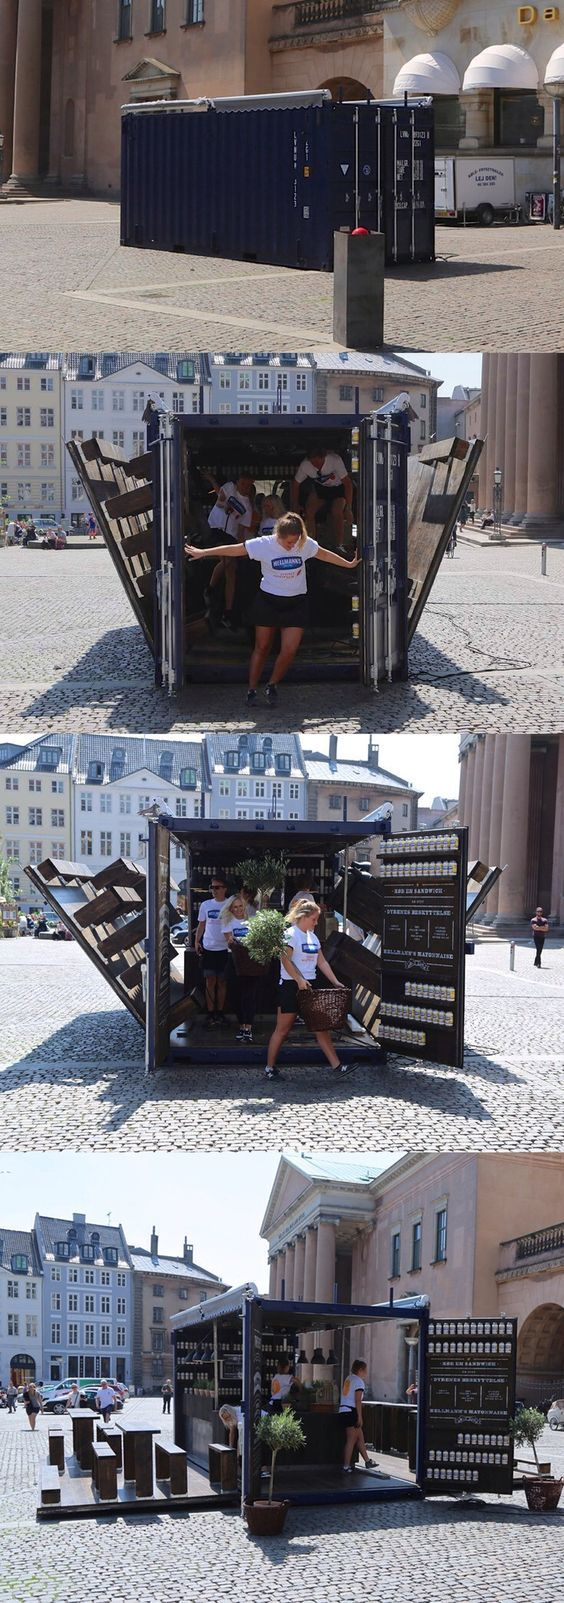 Container restaurant Denmark. The beauty and portability of a true pop-up restaurant! PopUp Republic: